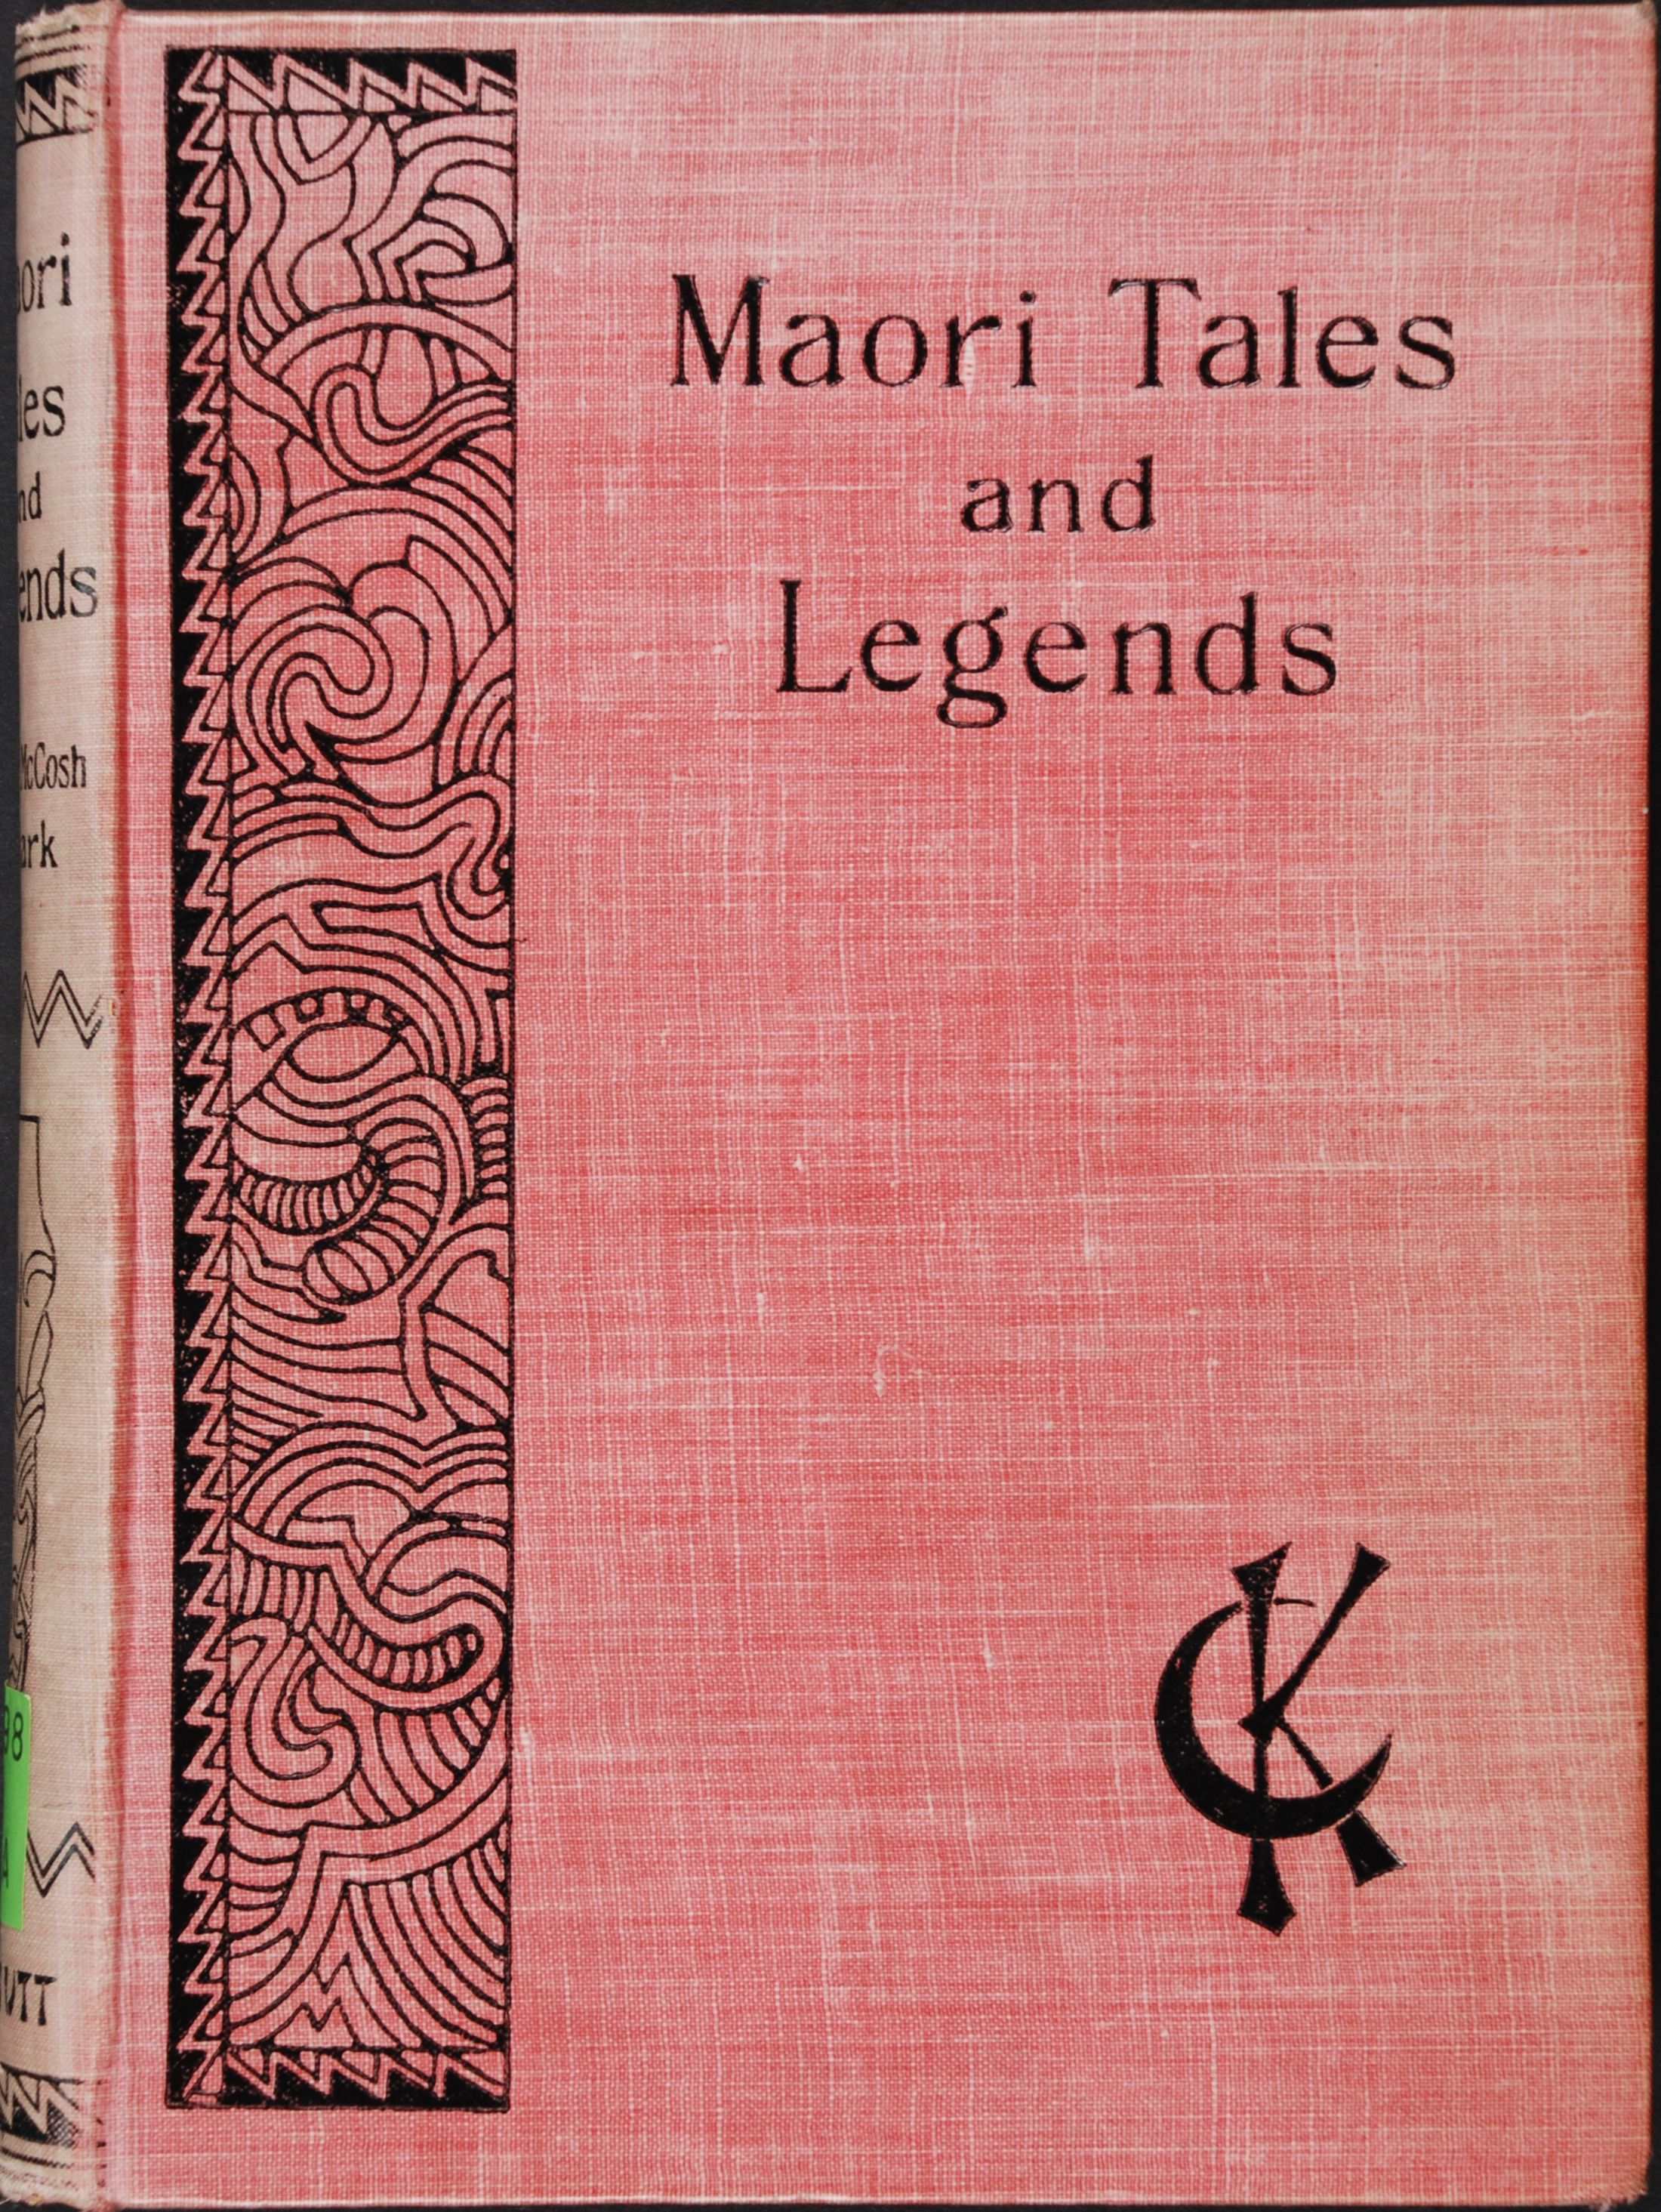 Maori tales and legends : collected and retold by Kate McCosh Clark with illustrations by Robert Atkinson. London: David McNutt, 1896.